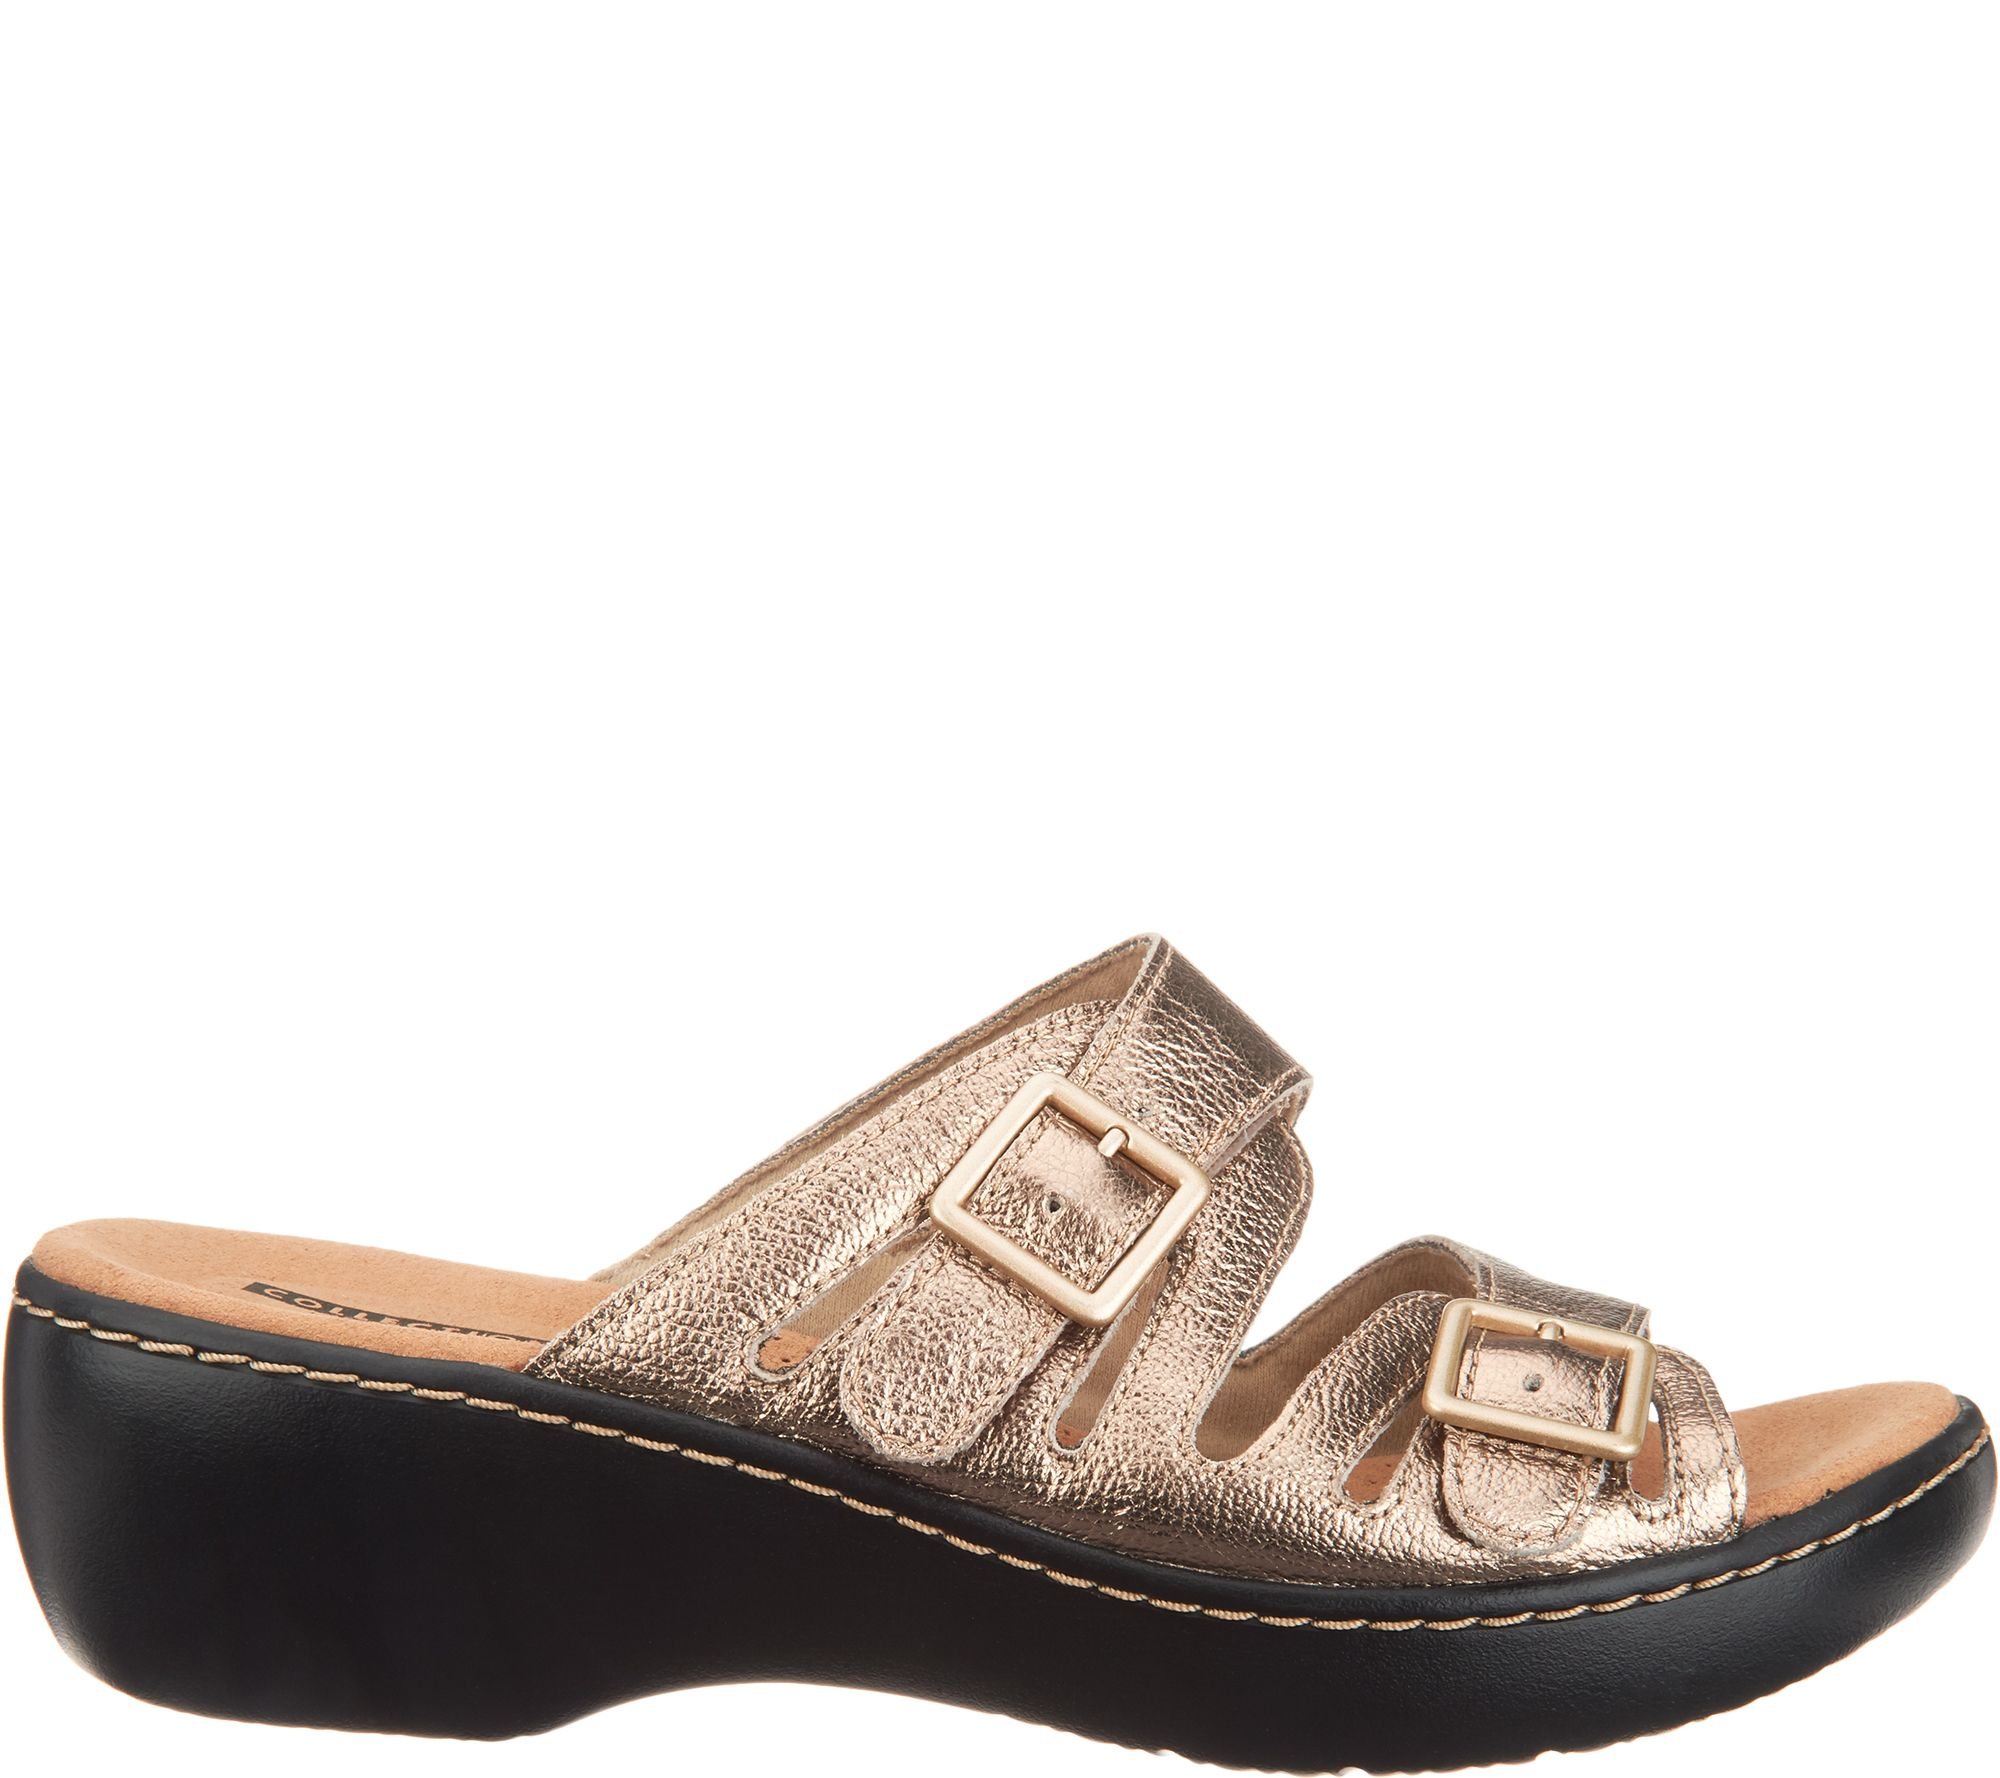 520cae4b41e Clarks Leather Lightweight Adjustable Slides - Delana Liri - Page 1 —  QVC.com